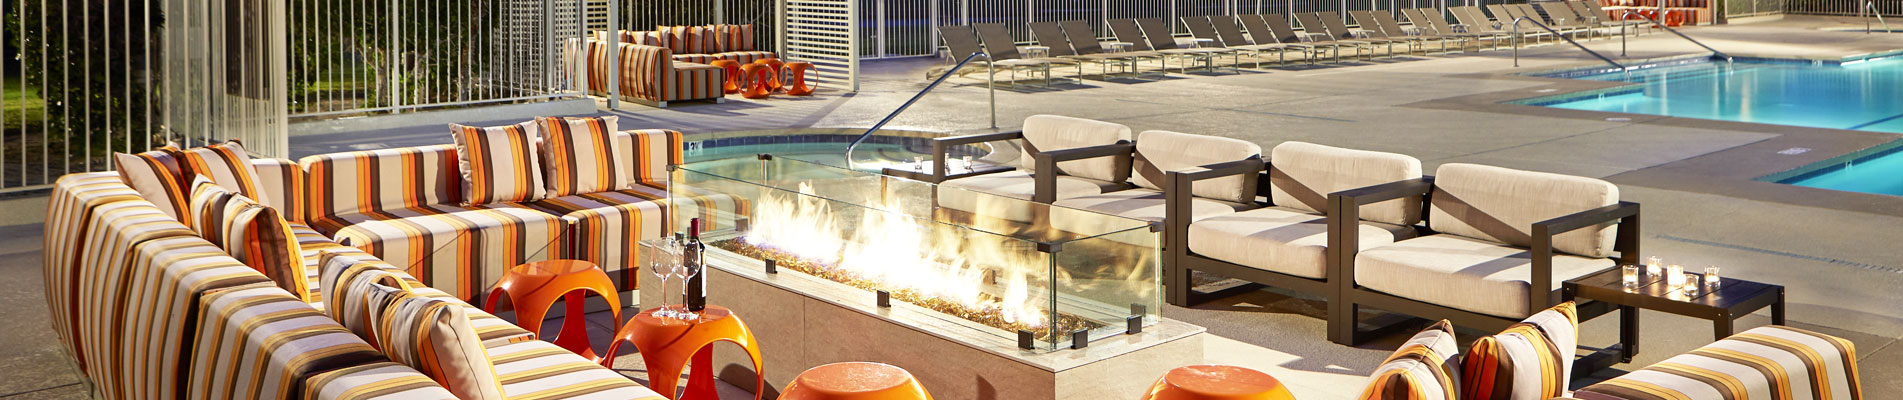 enjoy great amenitites like this outdoor firepit at DoubleTree Golf Resort Palm Springs Area